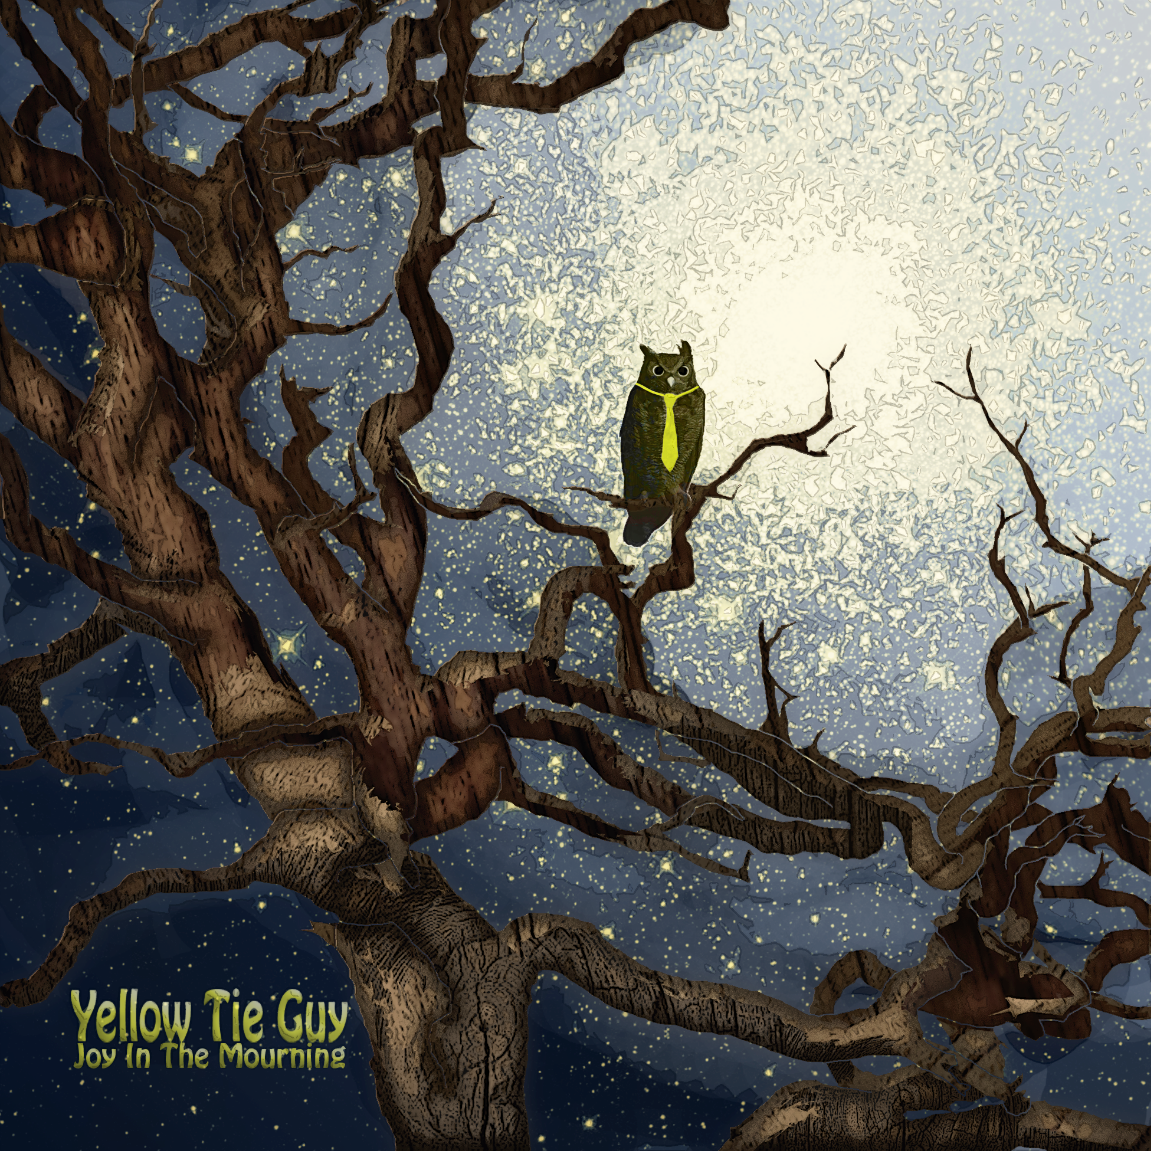 Yellowtieguy - Joy in the Mourning Album Cover